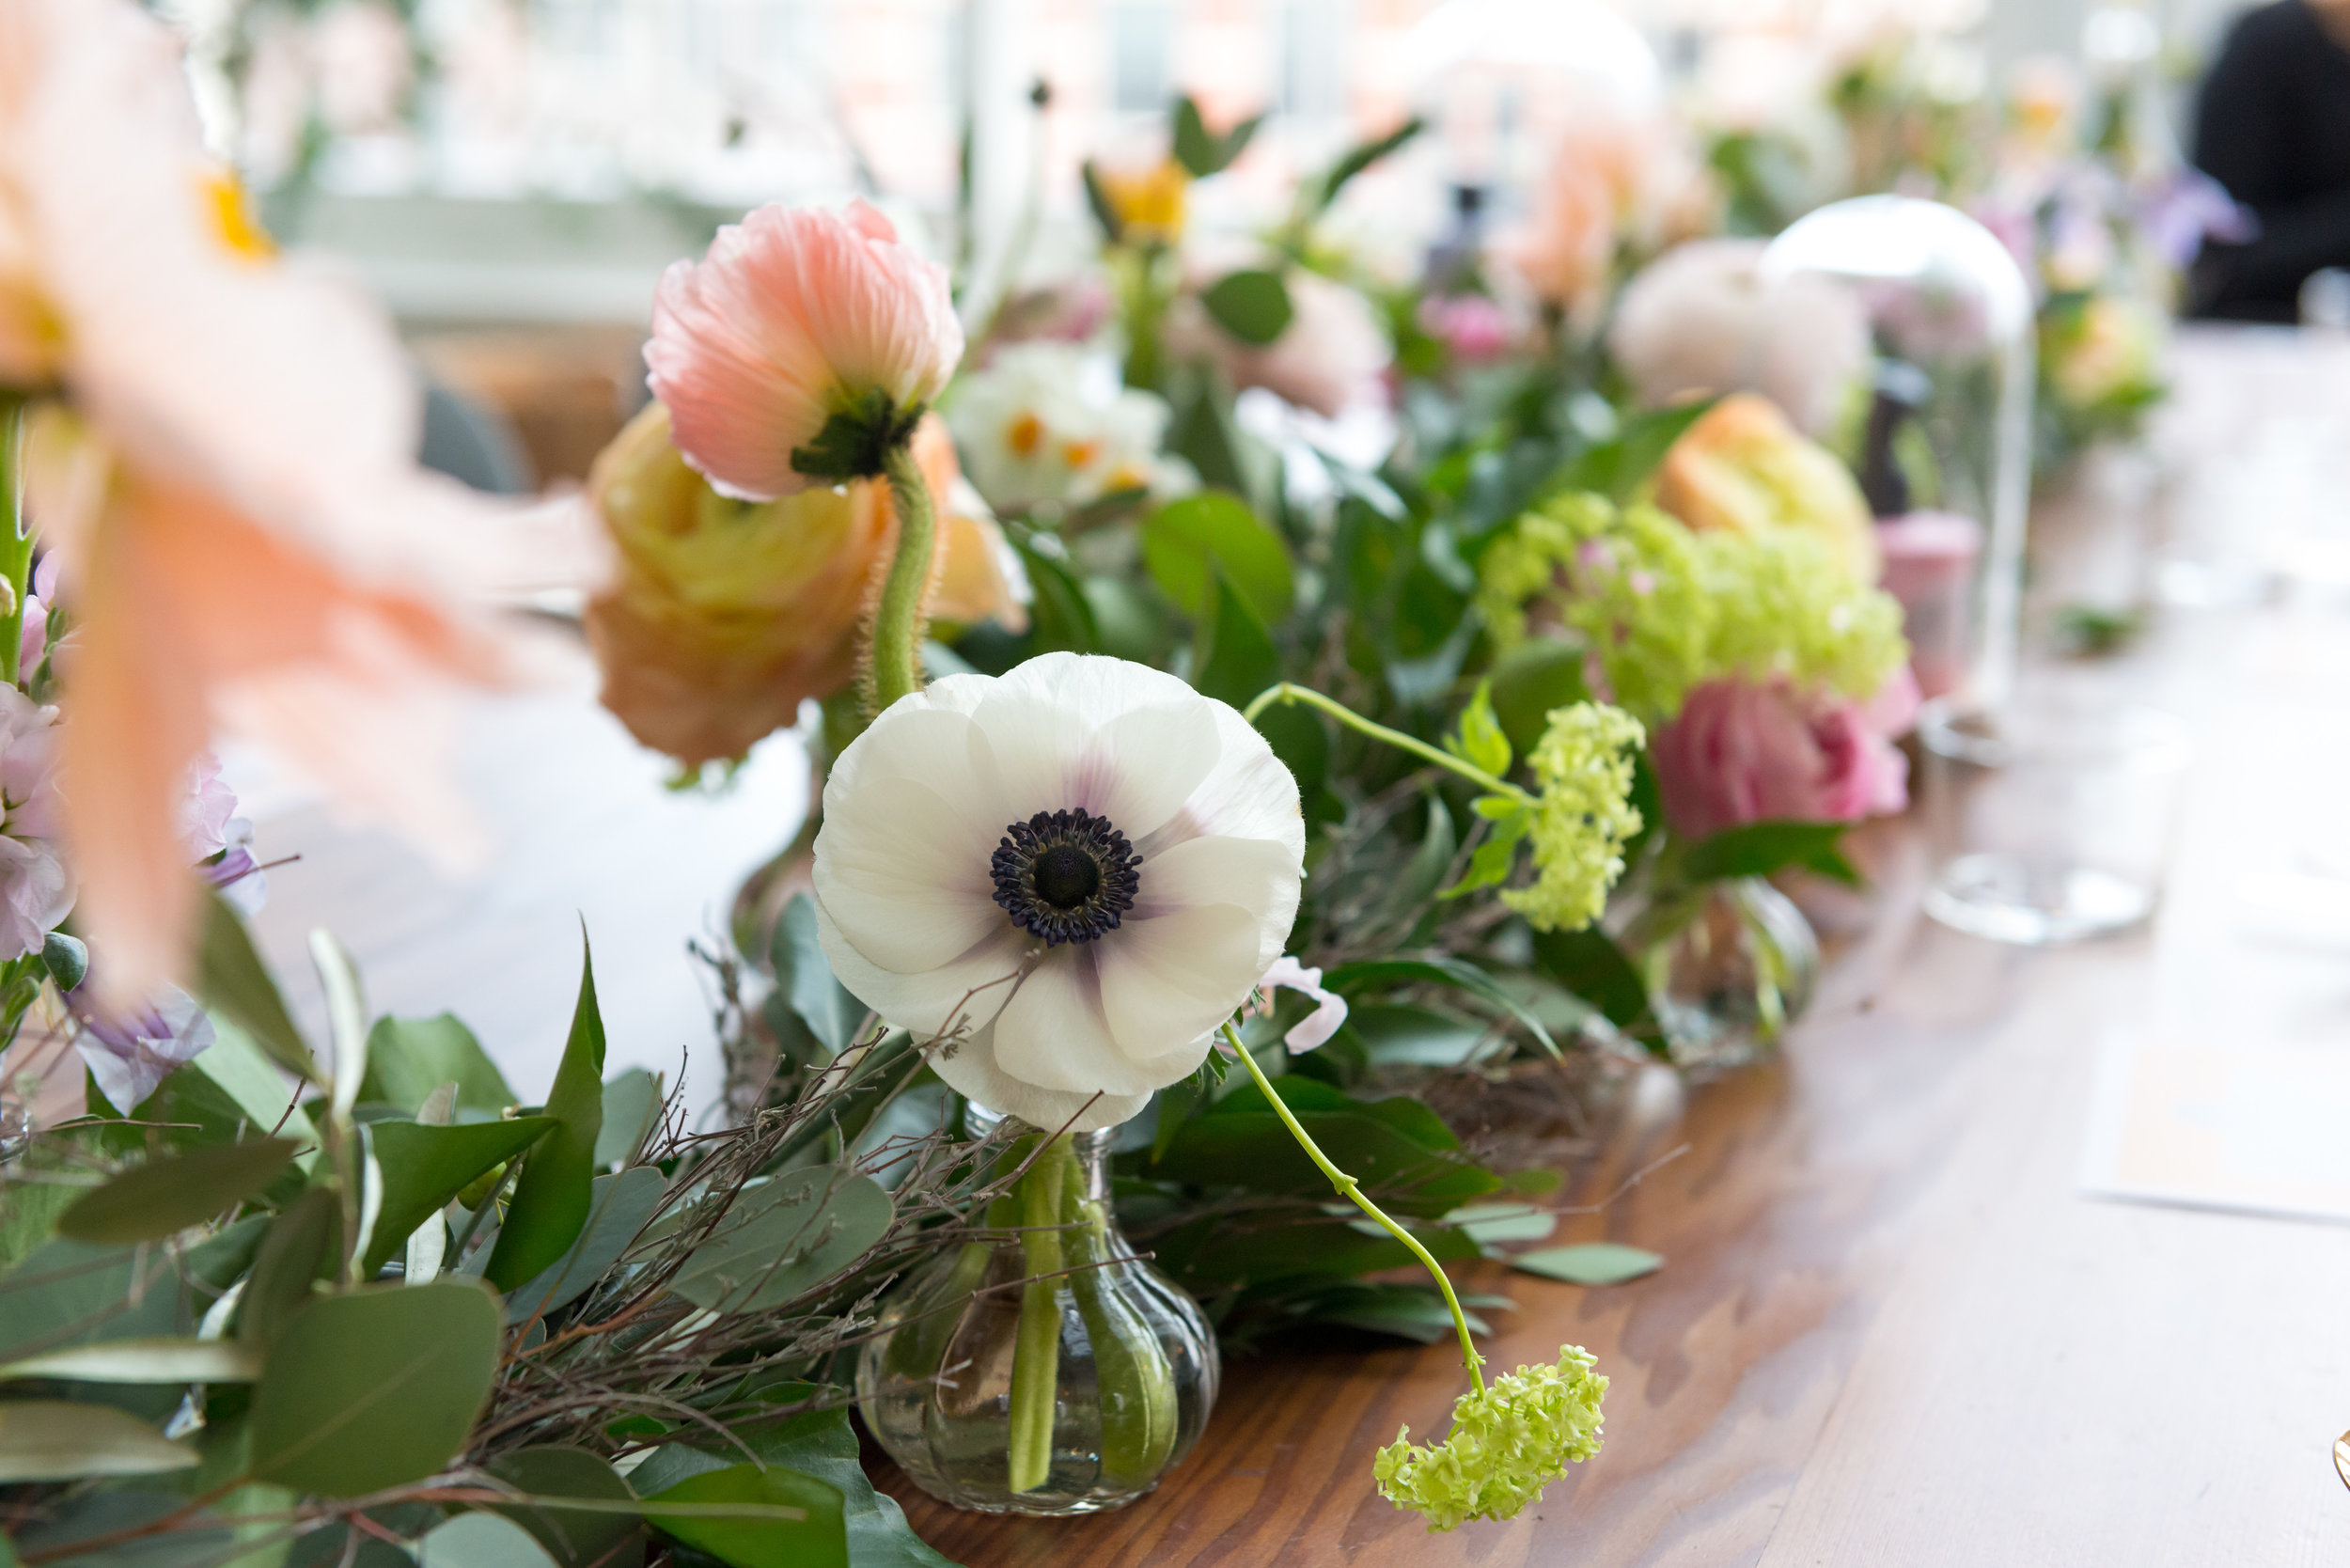 A.P Bloem bloemist bloemen flowers botanical florist event evenement beauty bohemian styling wreaths garland guirlande krans haircare Maria Nila the playing circle Mooi The Agency pastel anemone